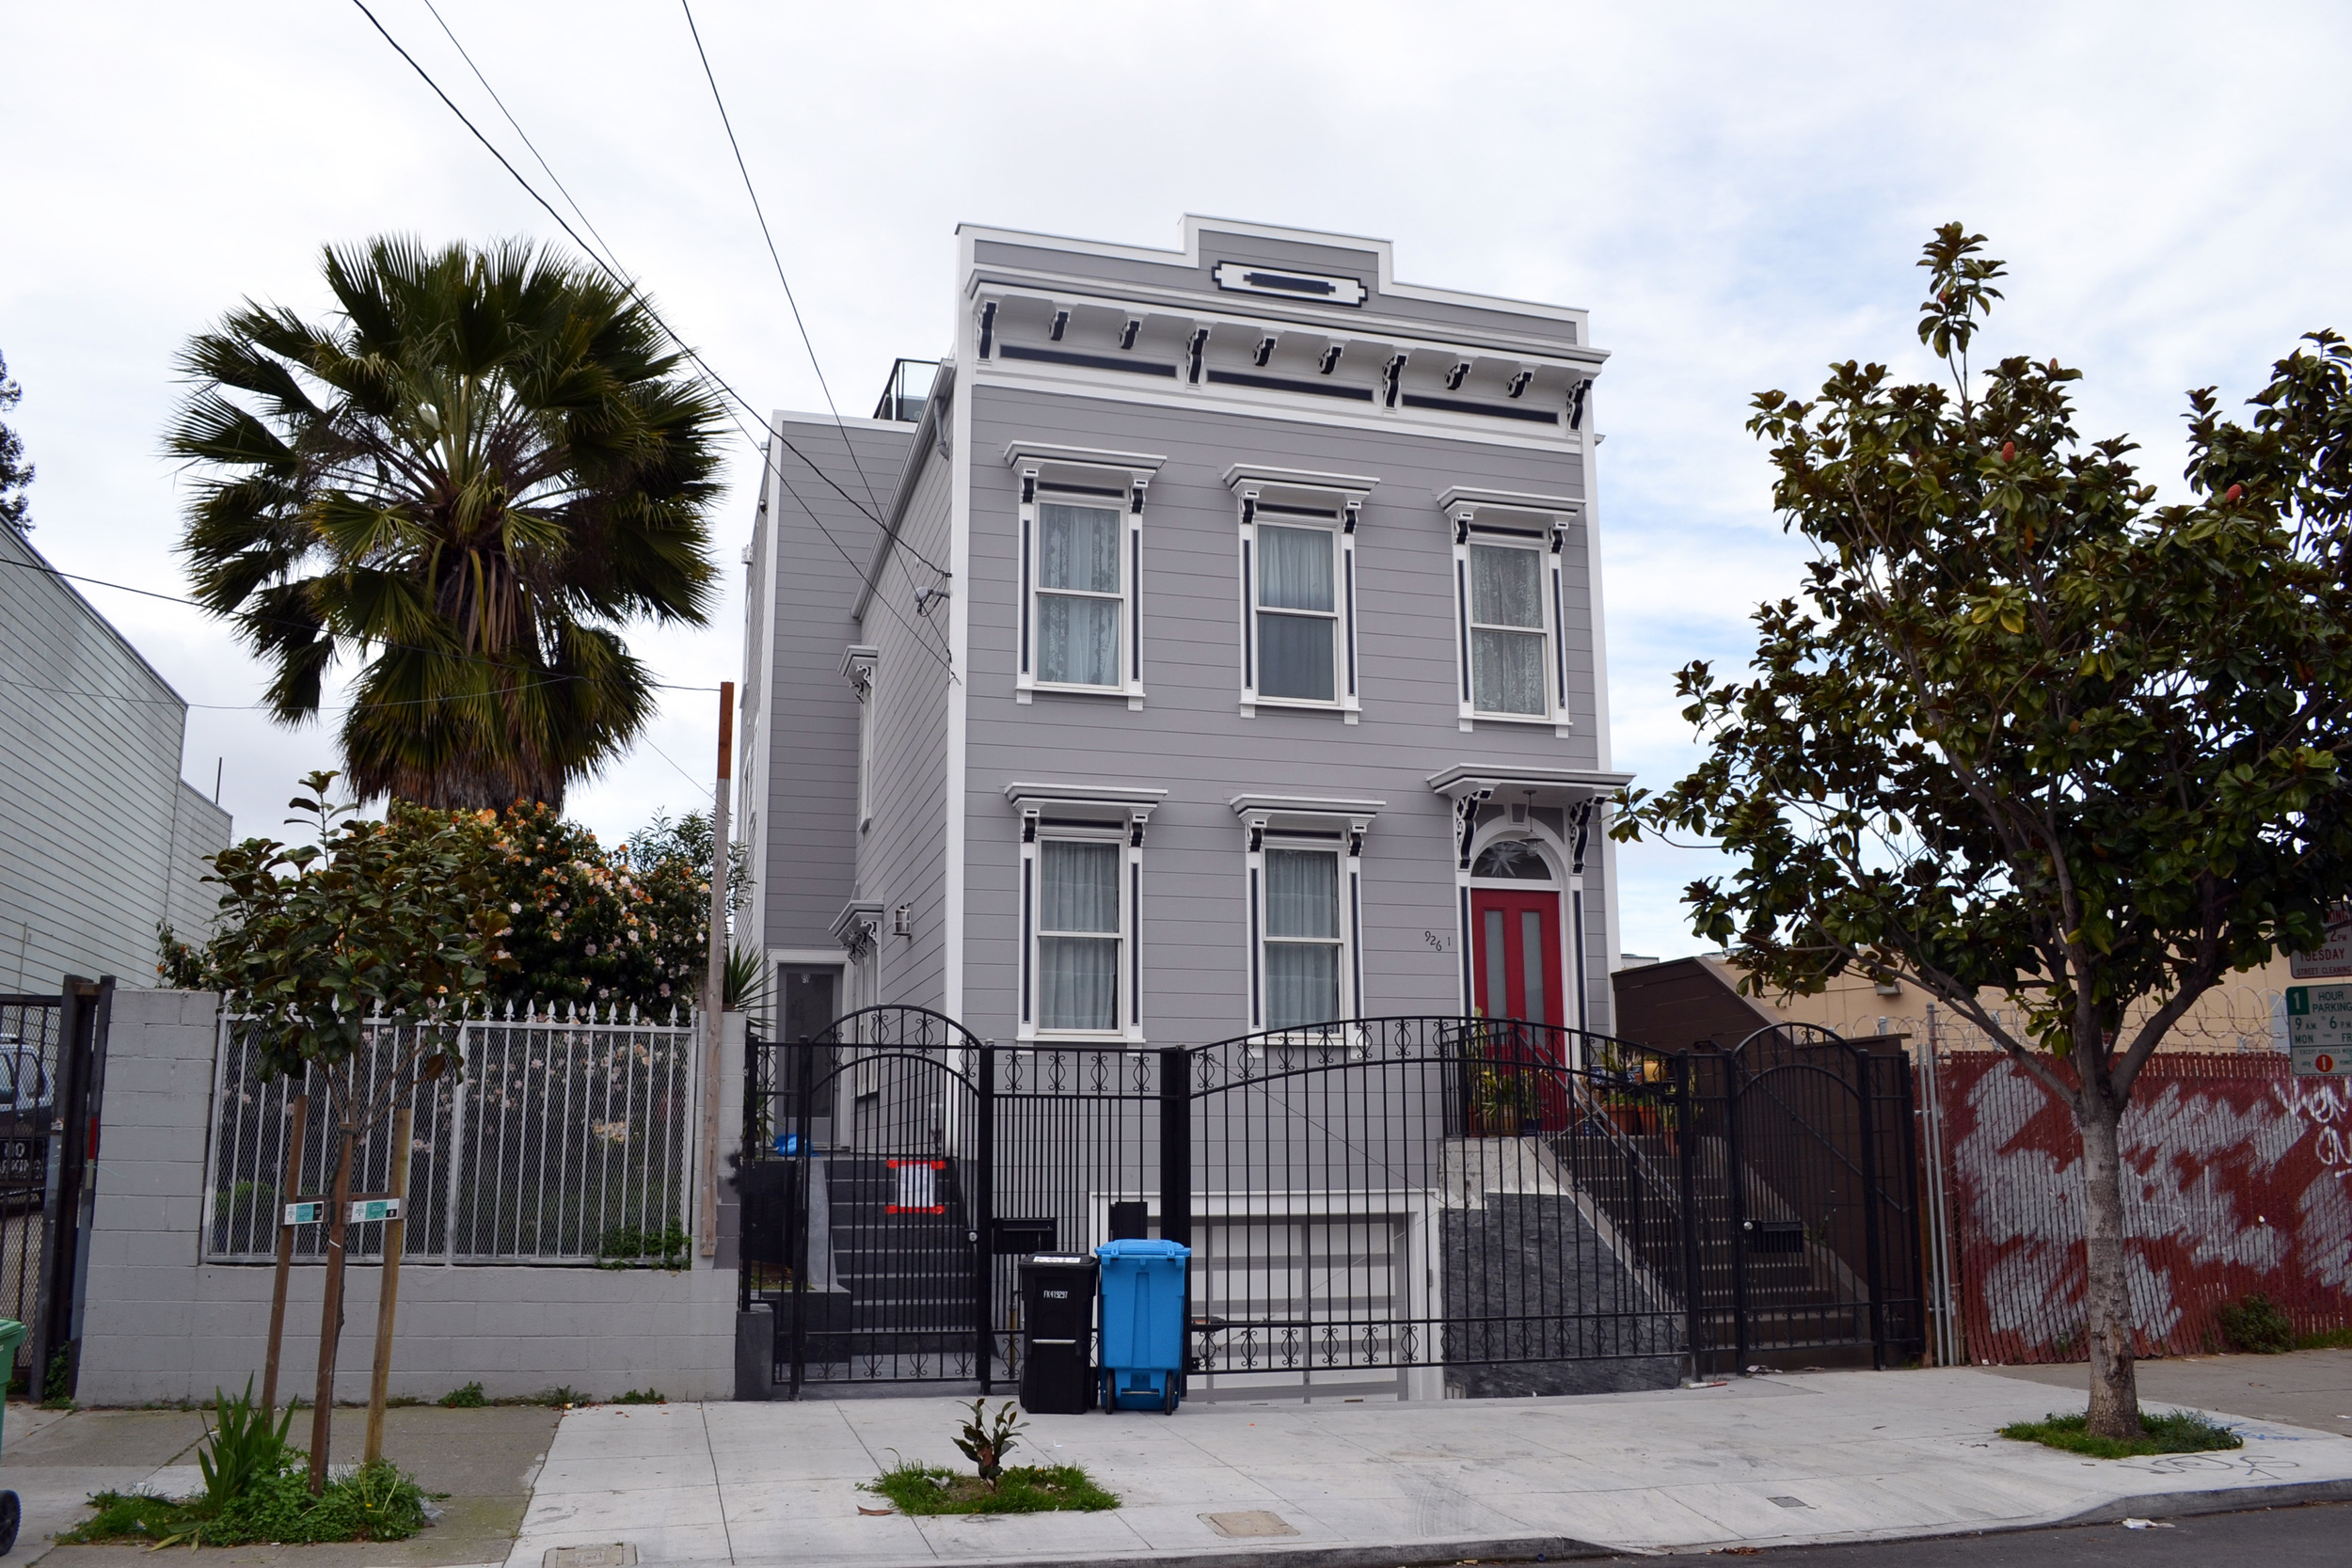 Mission District, San Francisco  1st and 2nd - $950K - Investor Refi and Land Purchase